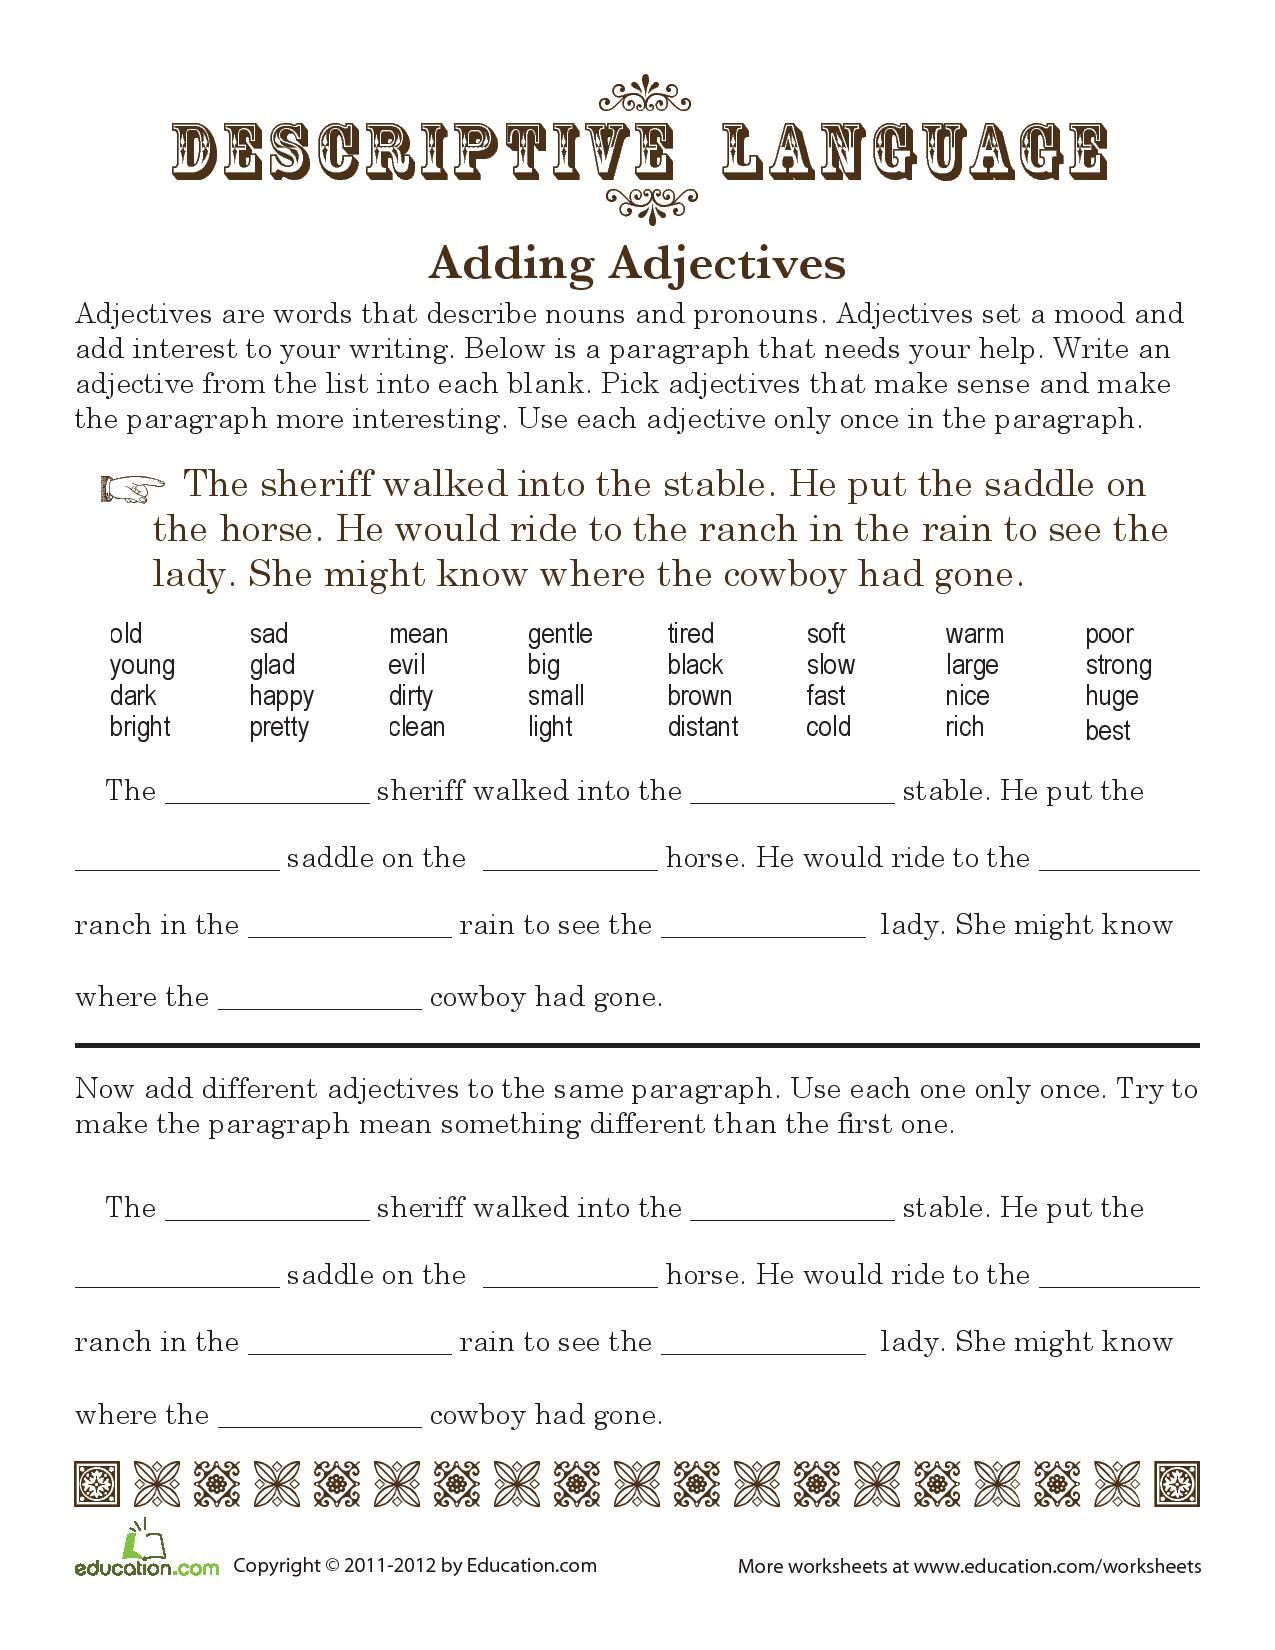 medium resolution of Time to saddle up some adjectives! Descriptive language adds interest to  writing for fifth graders.   Adjectives